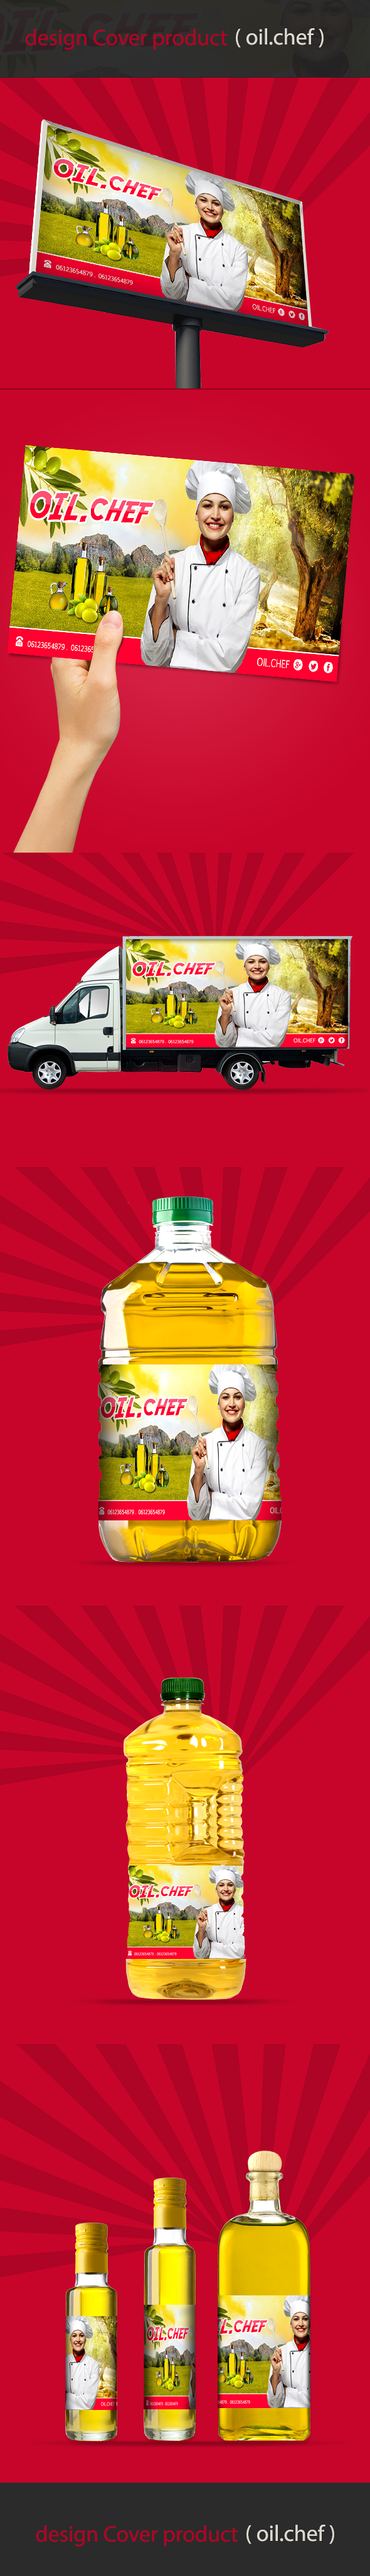 cover product (oil.chef)